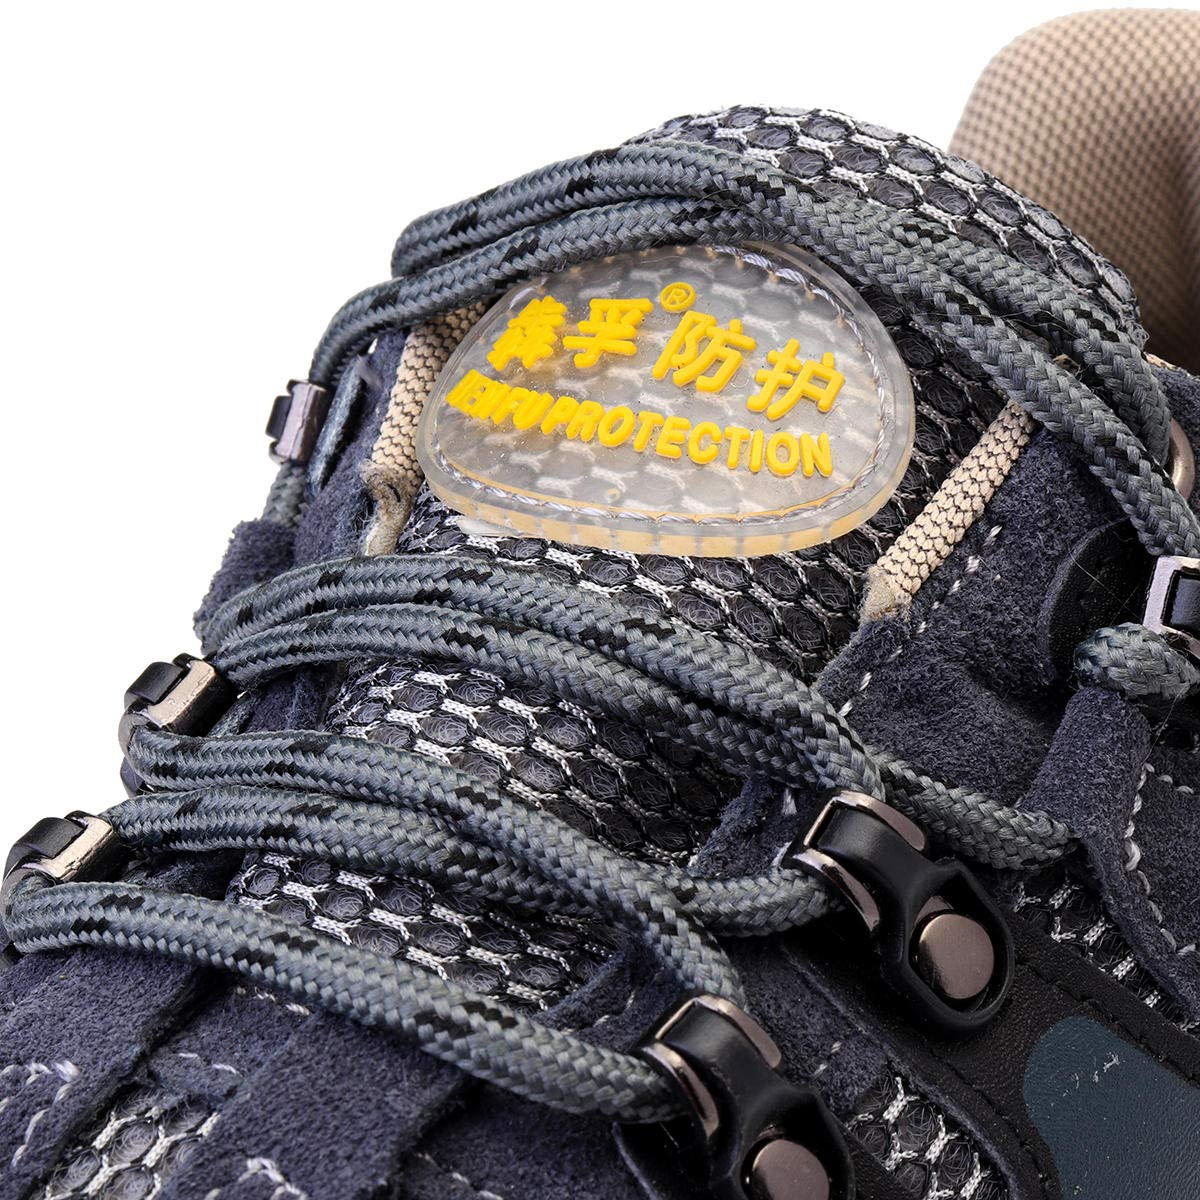 Men's Safety Shoes Steel Toe Work Sneakers Slip Resistant Breathable Hiking Climbing Shoes - 7.5 by Anddoa (Image #2)